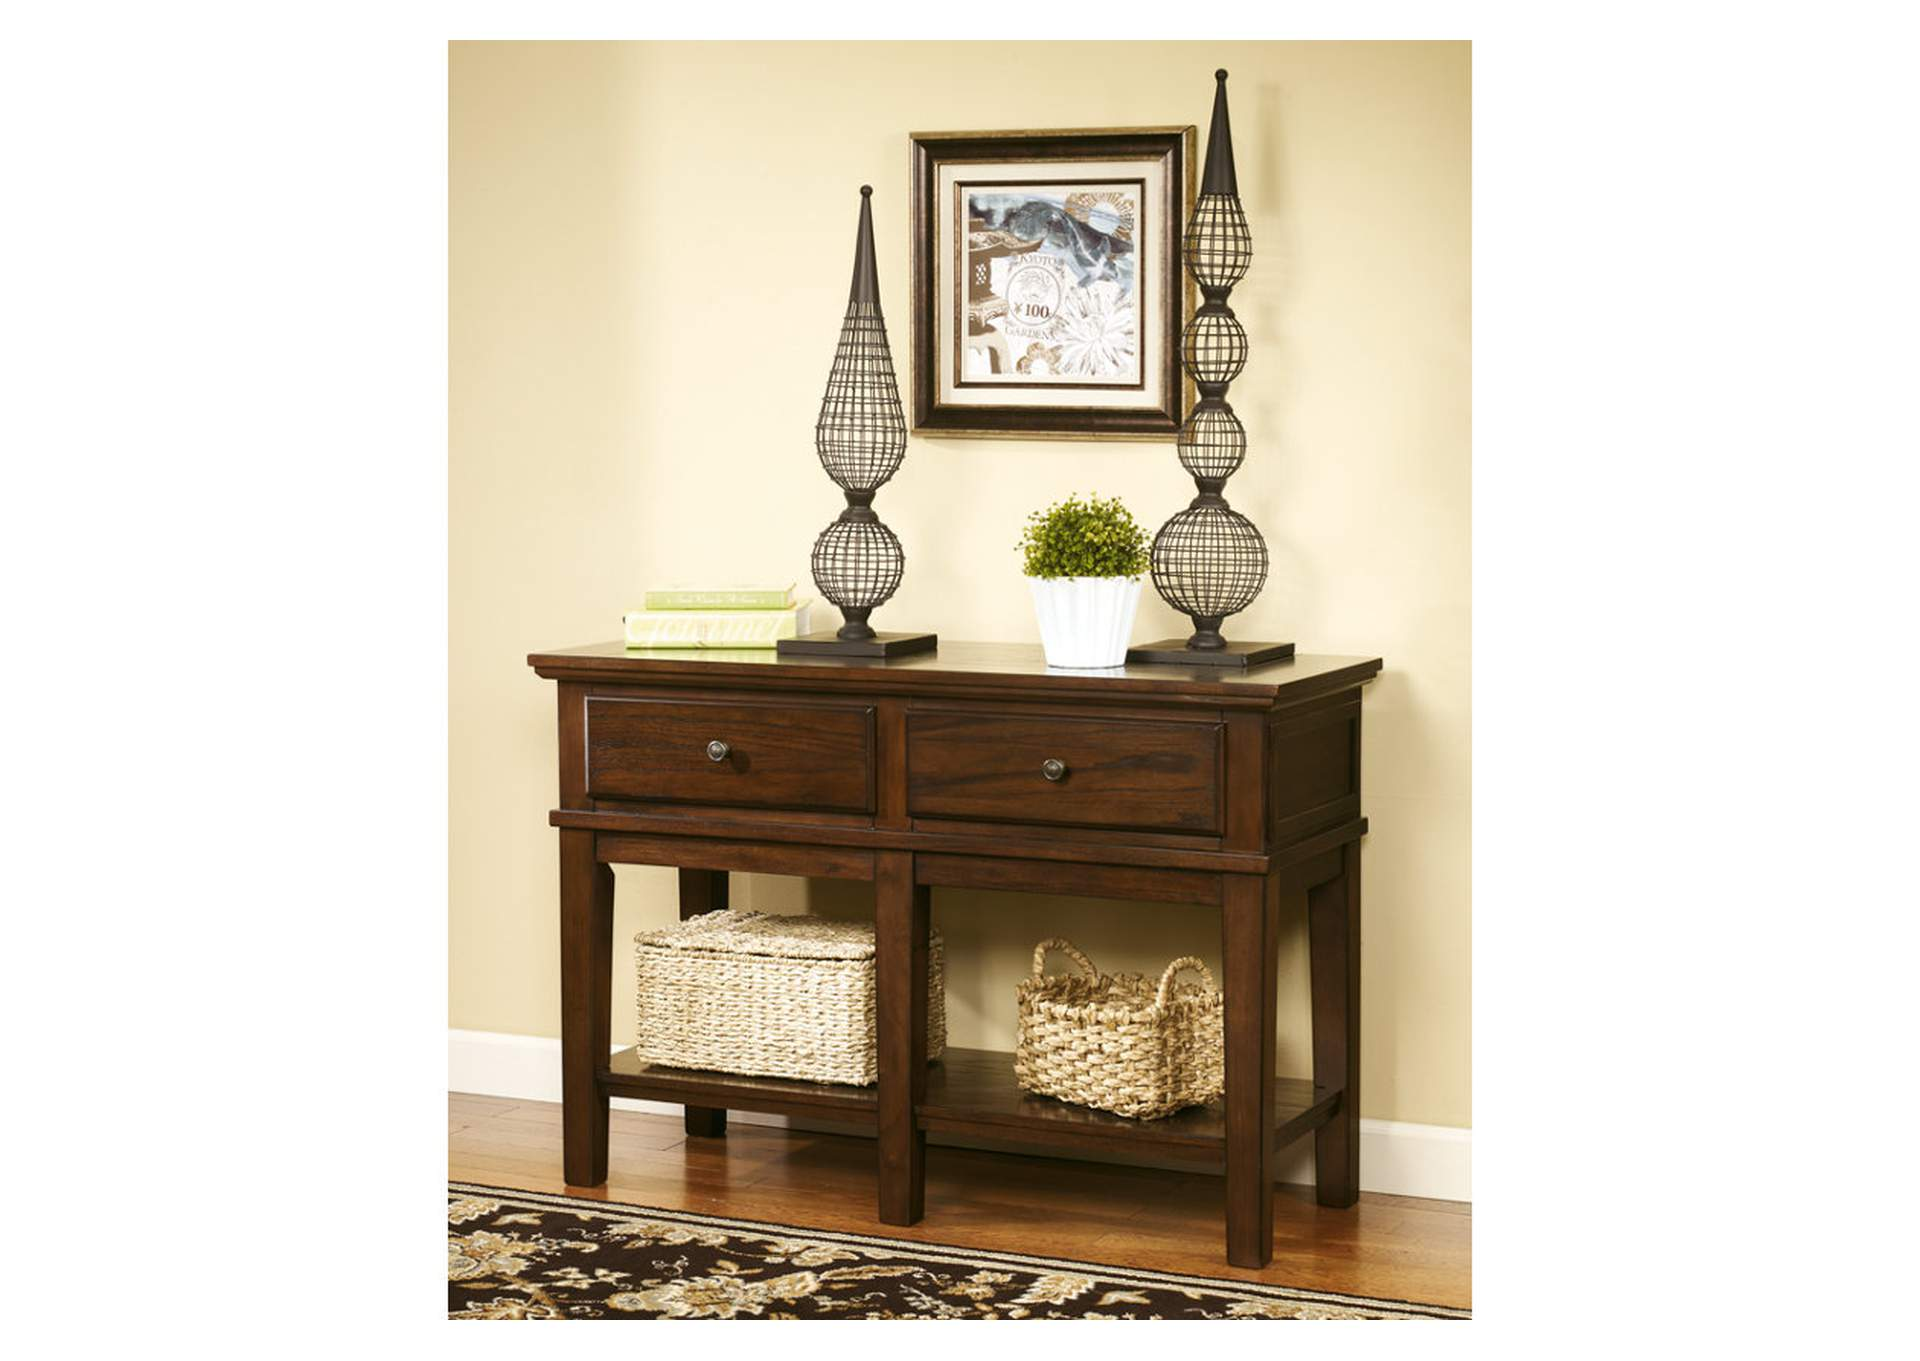 star furniture sofa table tufted leather gately console